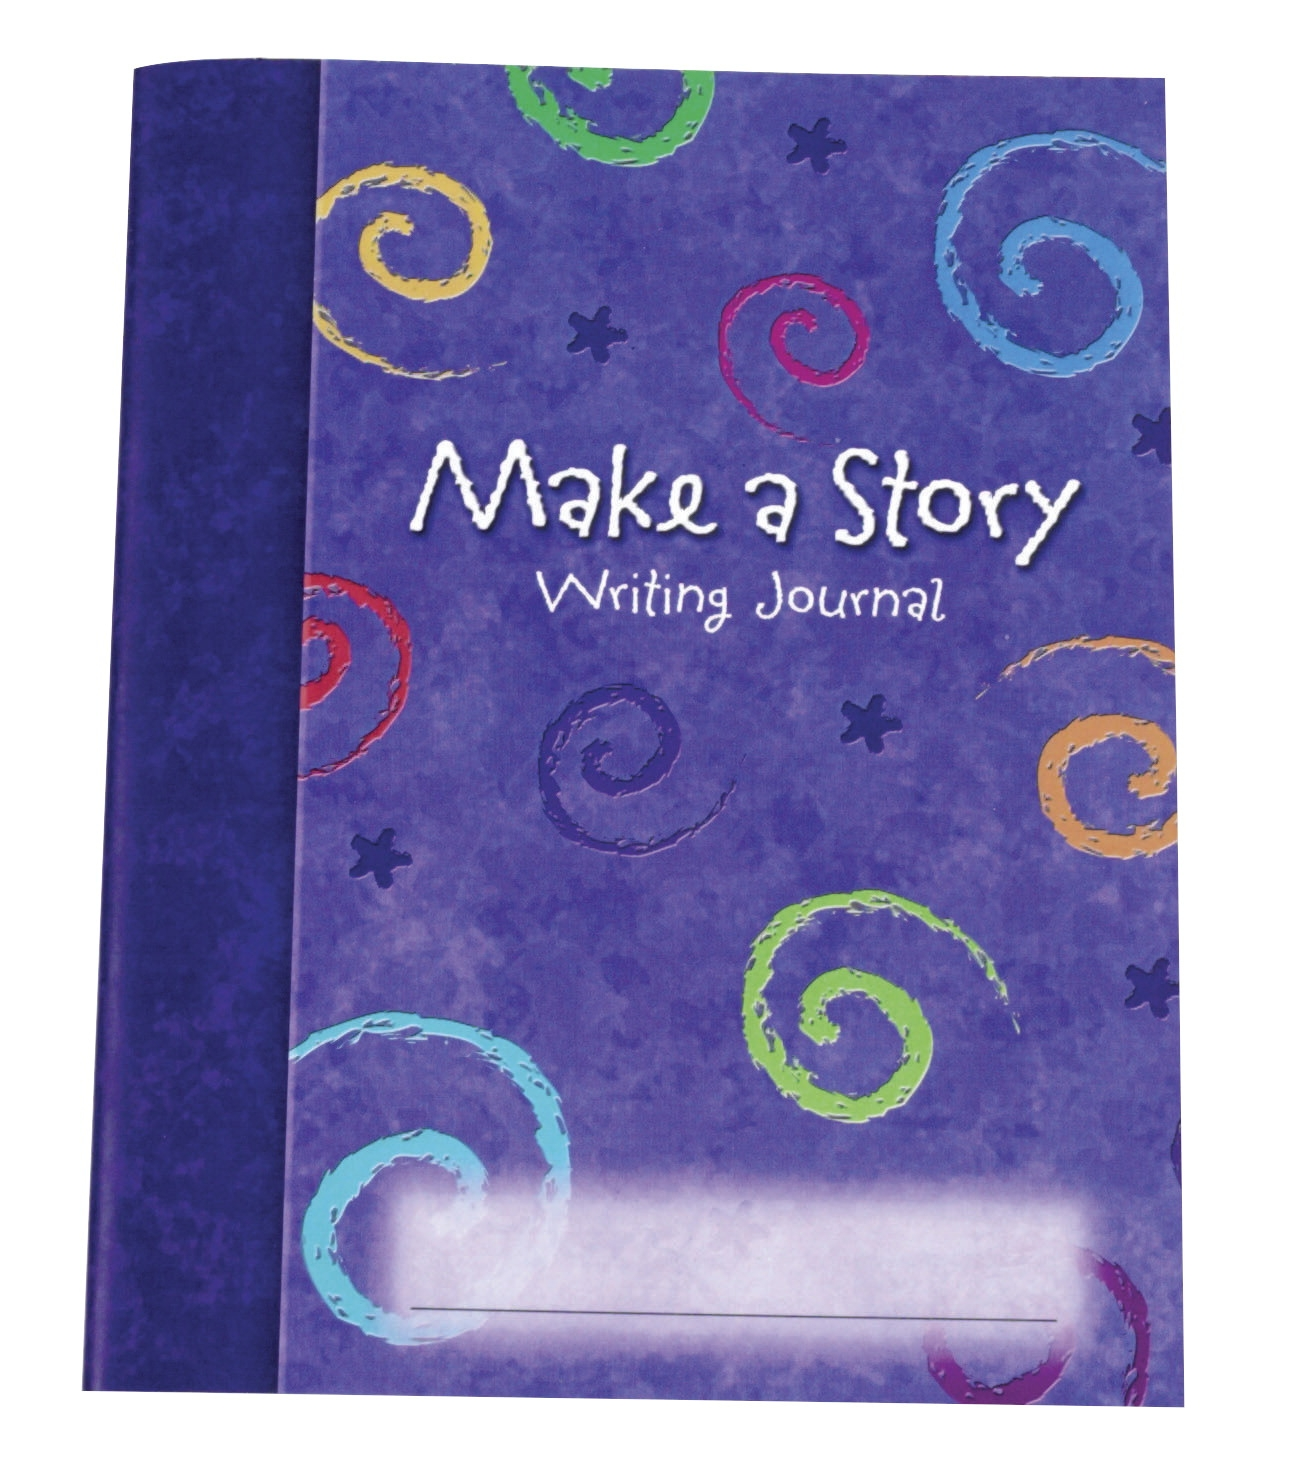 Instructional Materials Resources Science Activities Equipment Physical Science Projects Books - 080801 - Learning Resources Make A Story Writing Journal; Set Of 10 080801